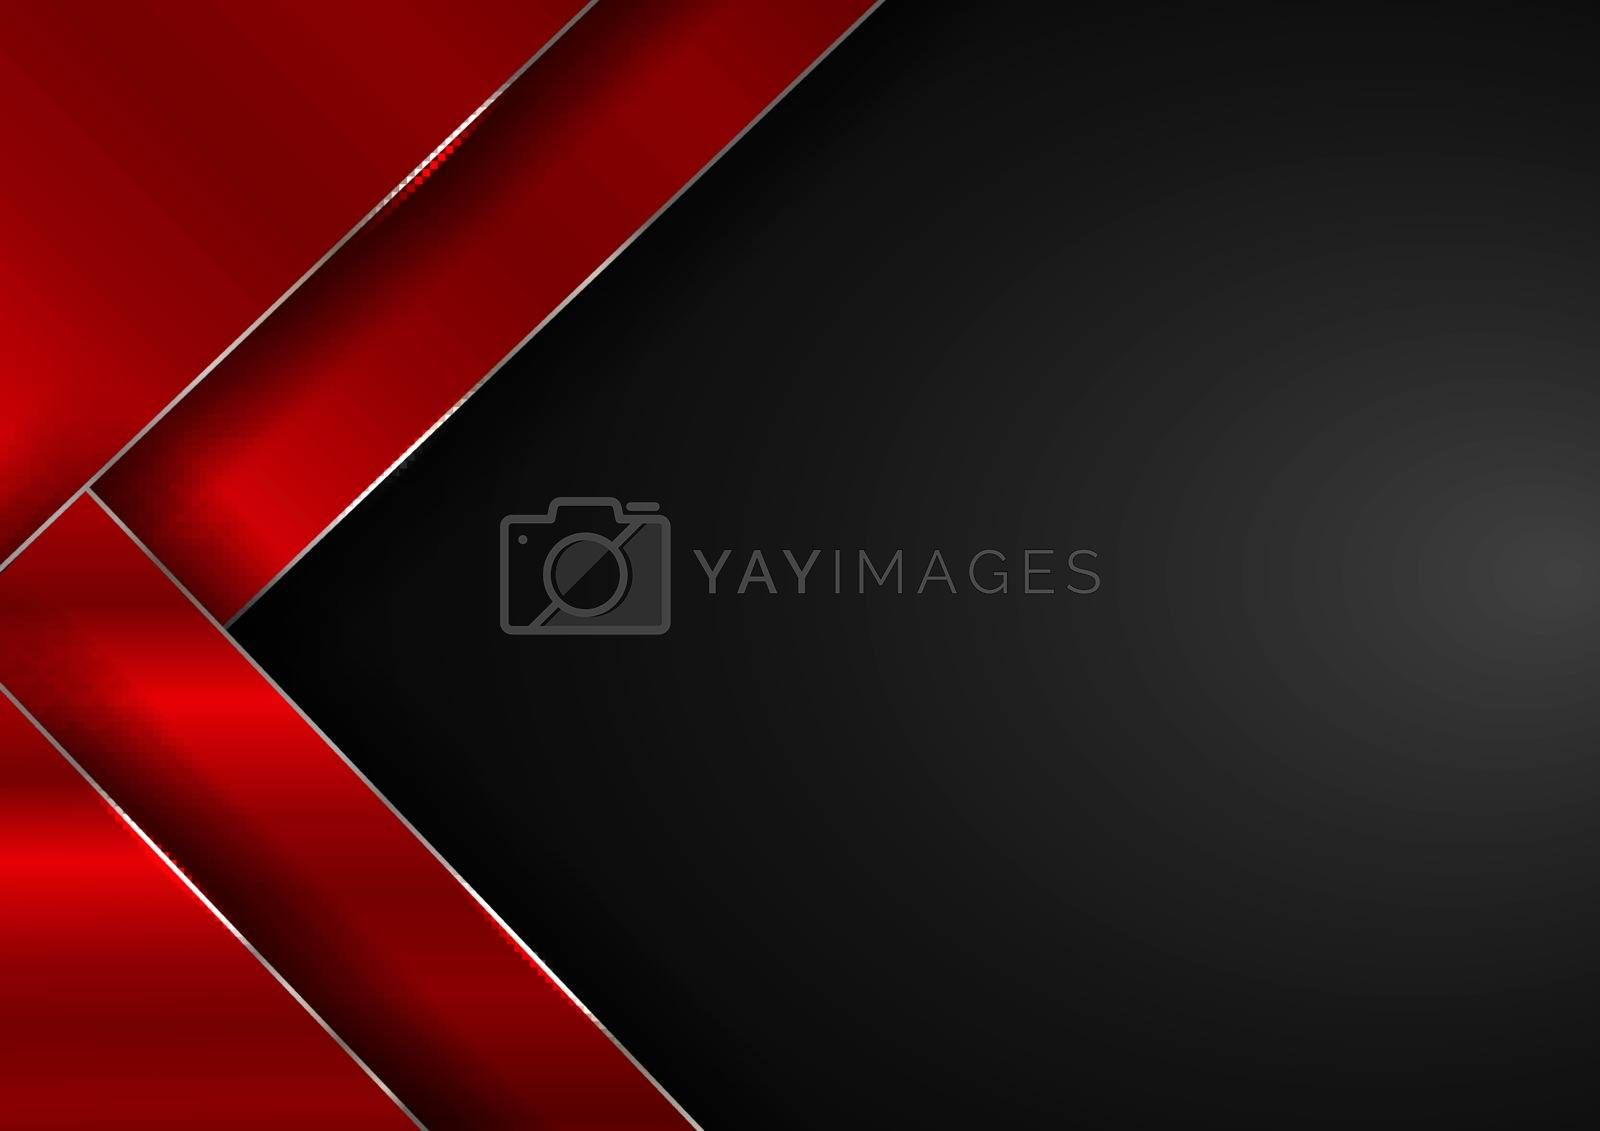 Abstract elegant red geometric overlap layers with stripe silver line and lighting on black background. Luxury style. Vector illustration